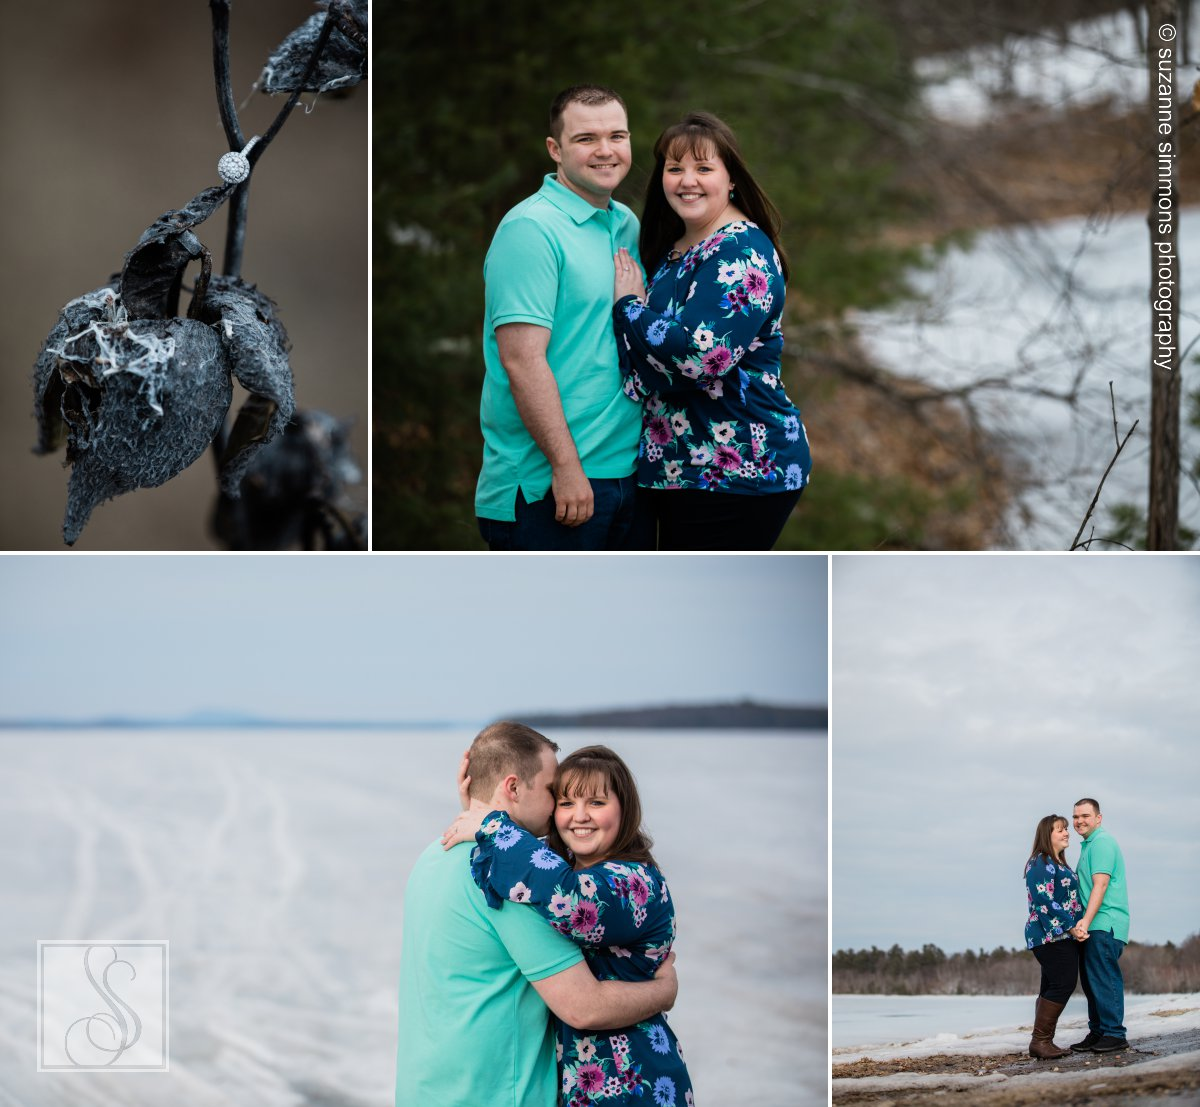 Lexi and Chris's winter engagement session by Sebago Lake in Standish, Maine